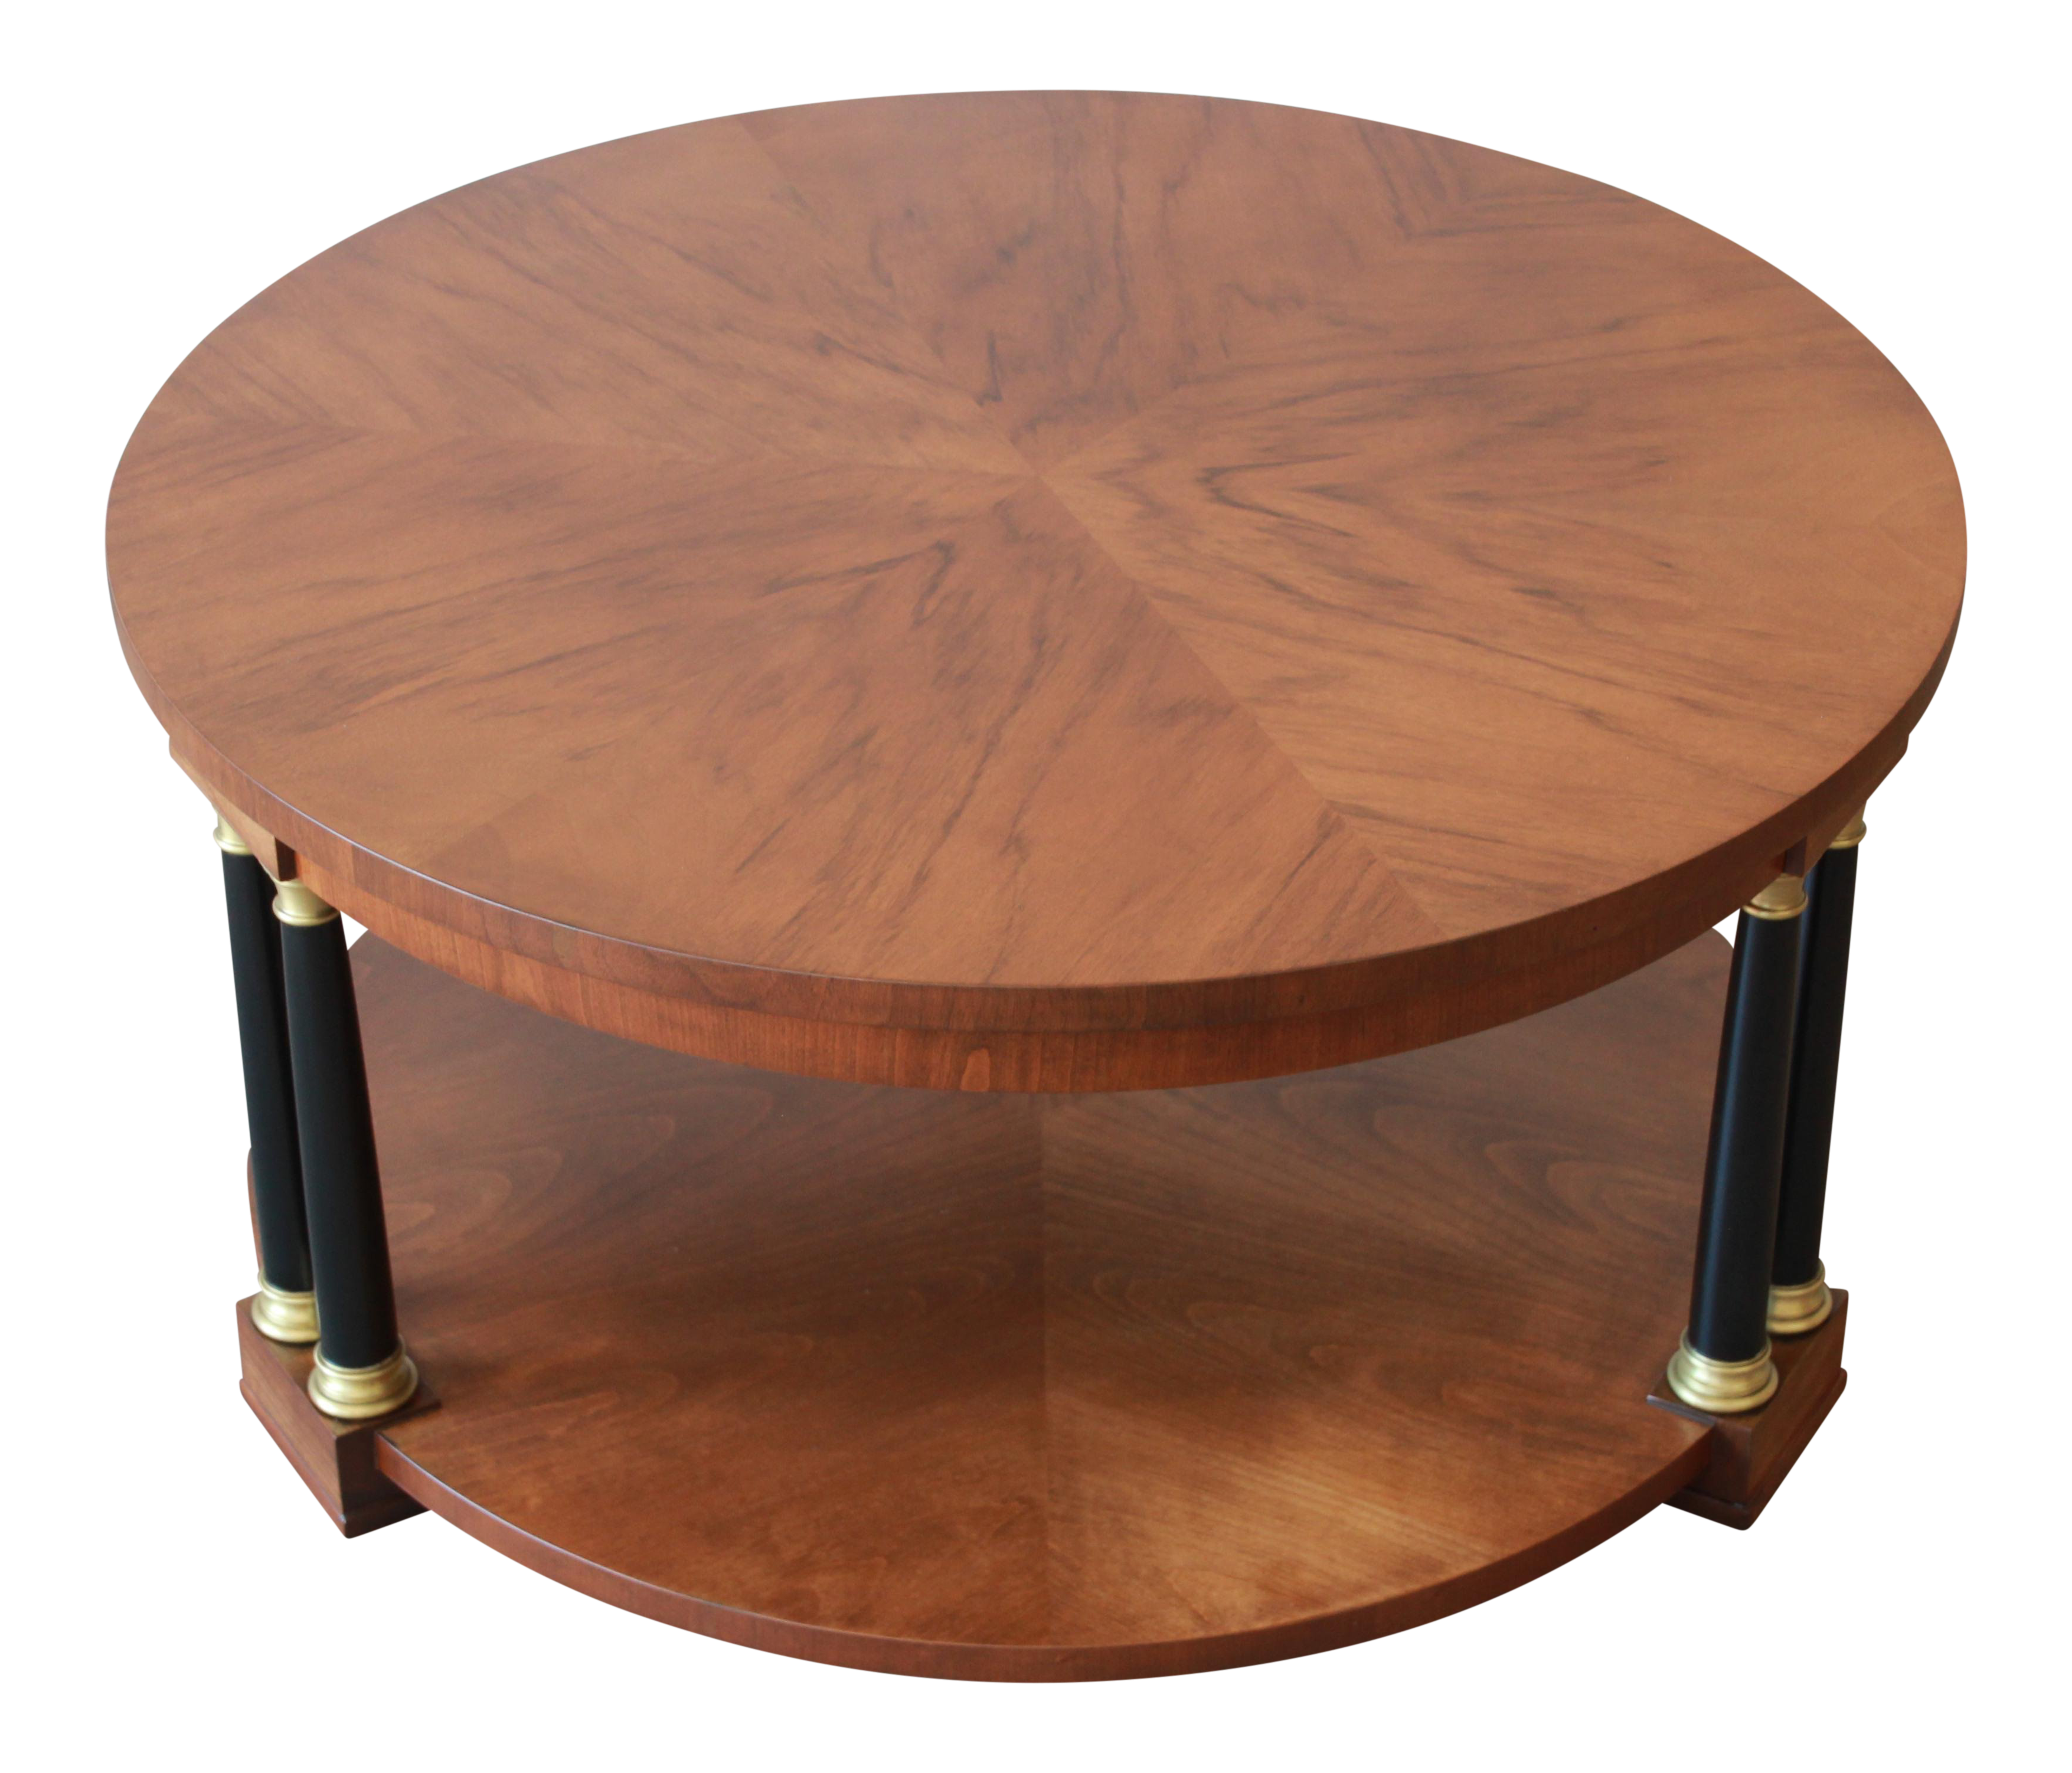 Charmant Baker Furniture Round Neoclassical Coffee Table